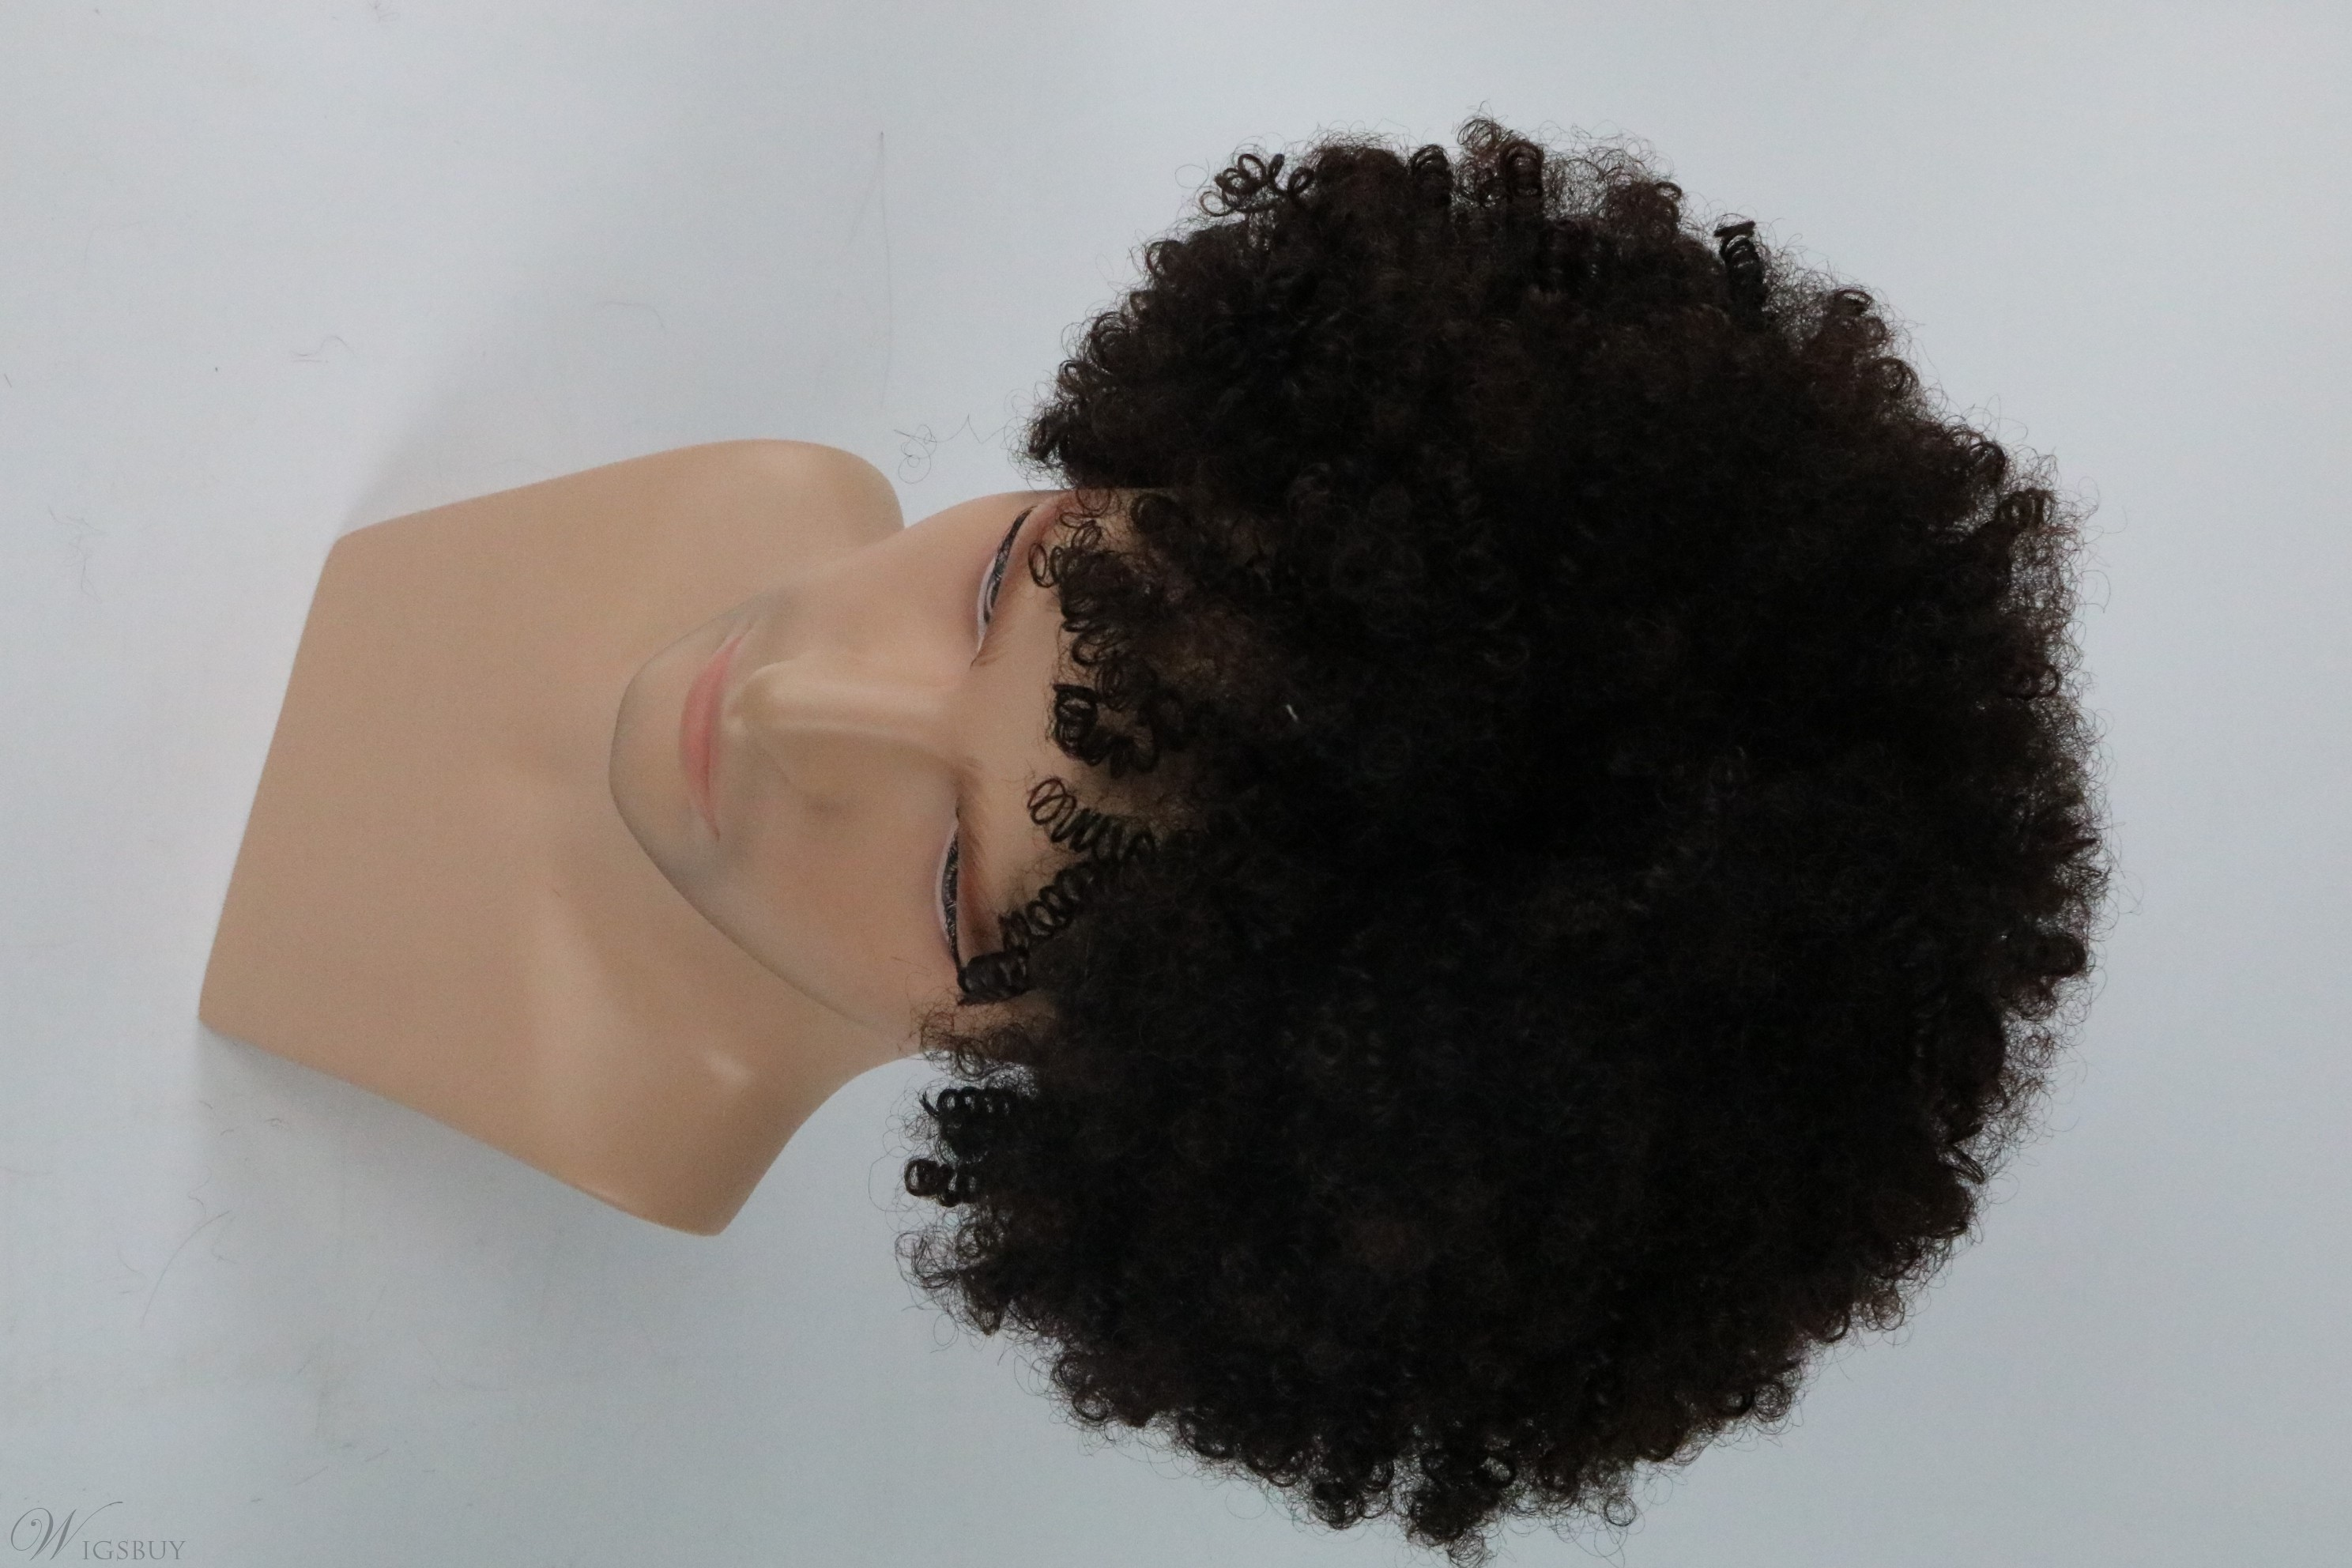 Short Fluffy Afro Wigs Synthetic Capless Wigs Unisex Men's Fancy Funny Wigs for Party 12inch